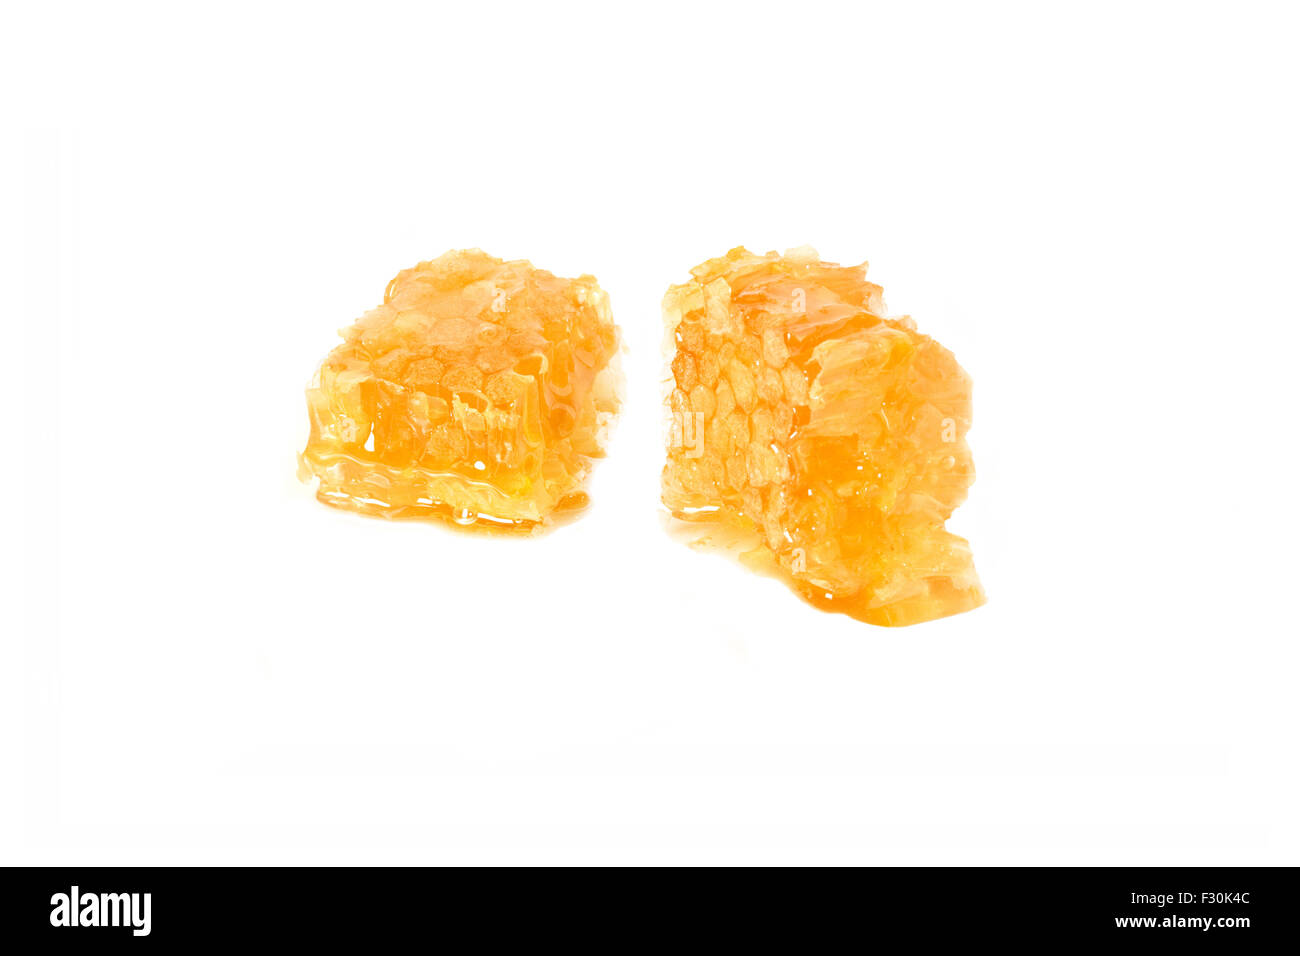 Two honeycomb cubes/ pieces made of fresh greek wild thyme organic honey cutout on white background. Perspective - Stock Image